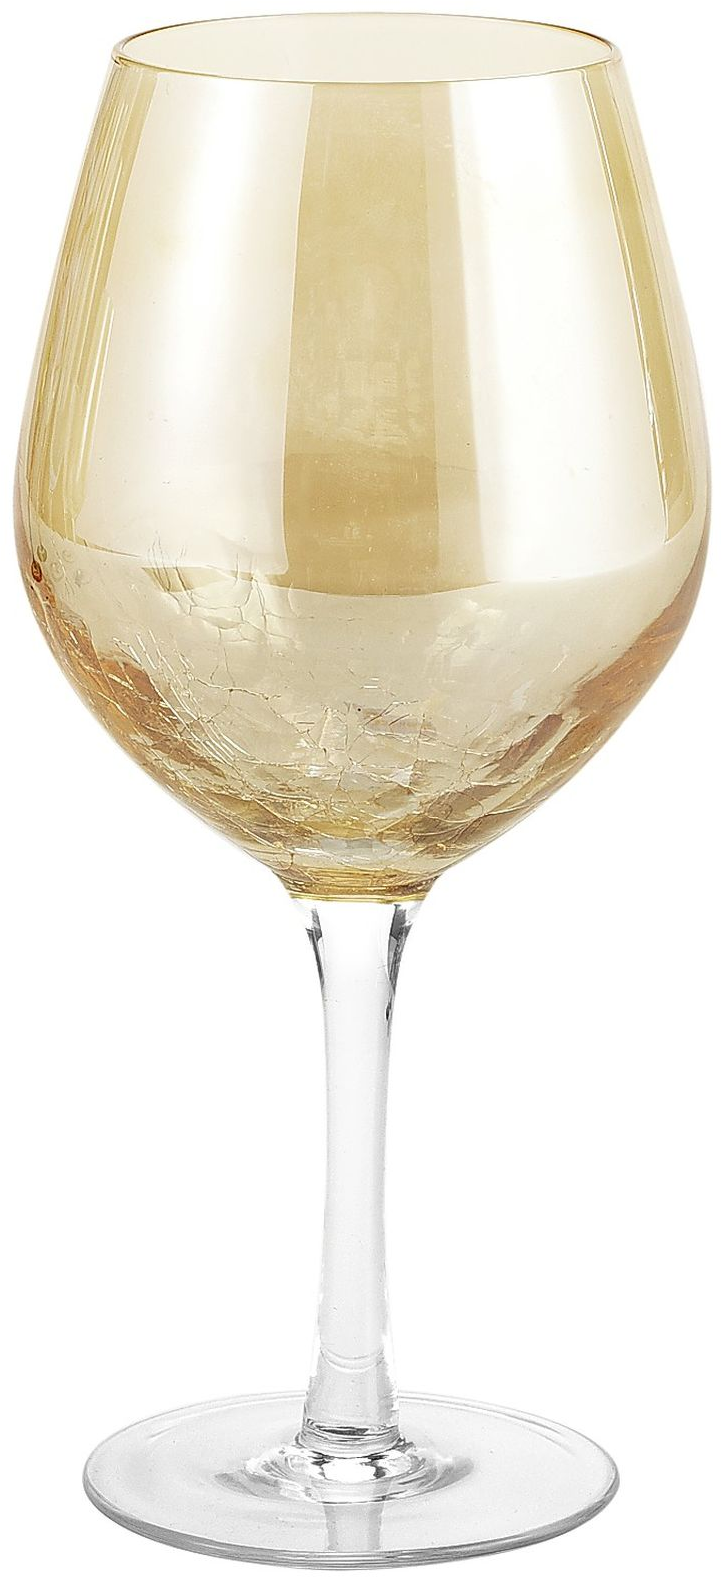 Crackle Red Wine Glass - Golden Luster | Pier 1 Imports